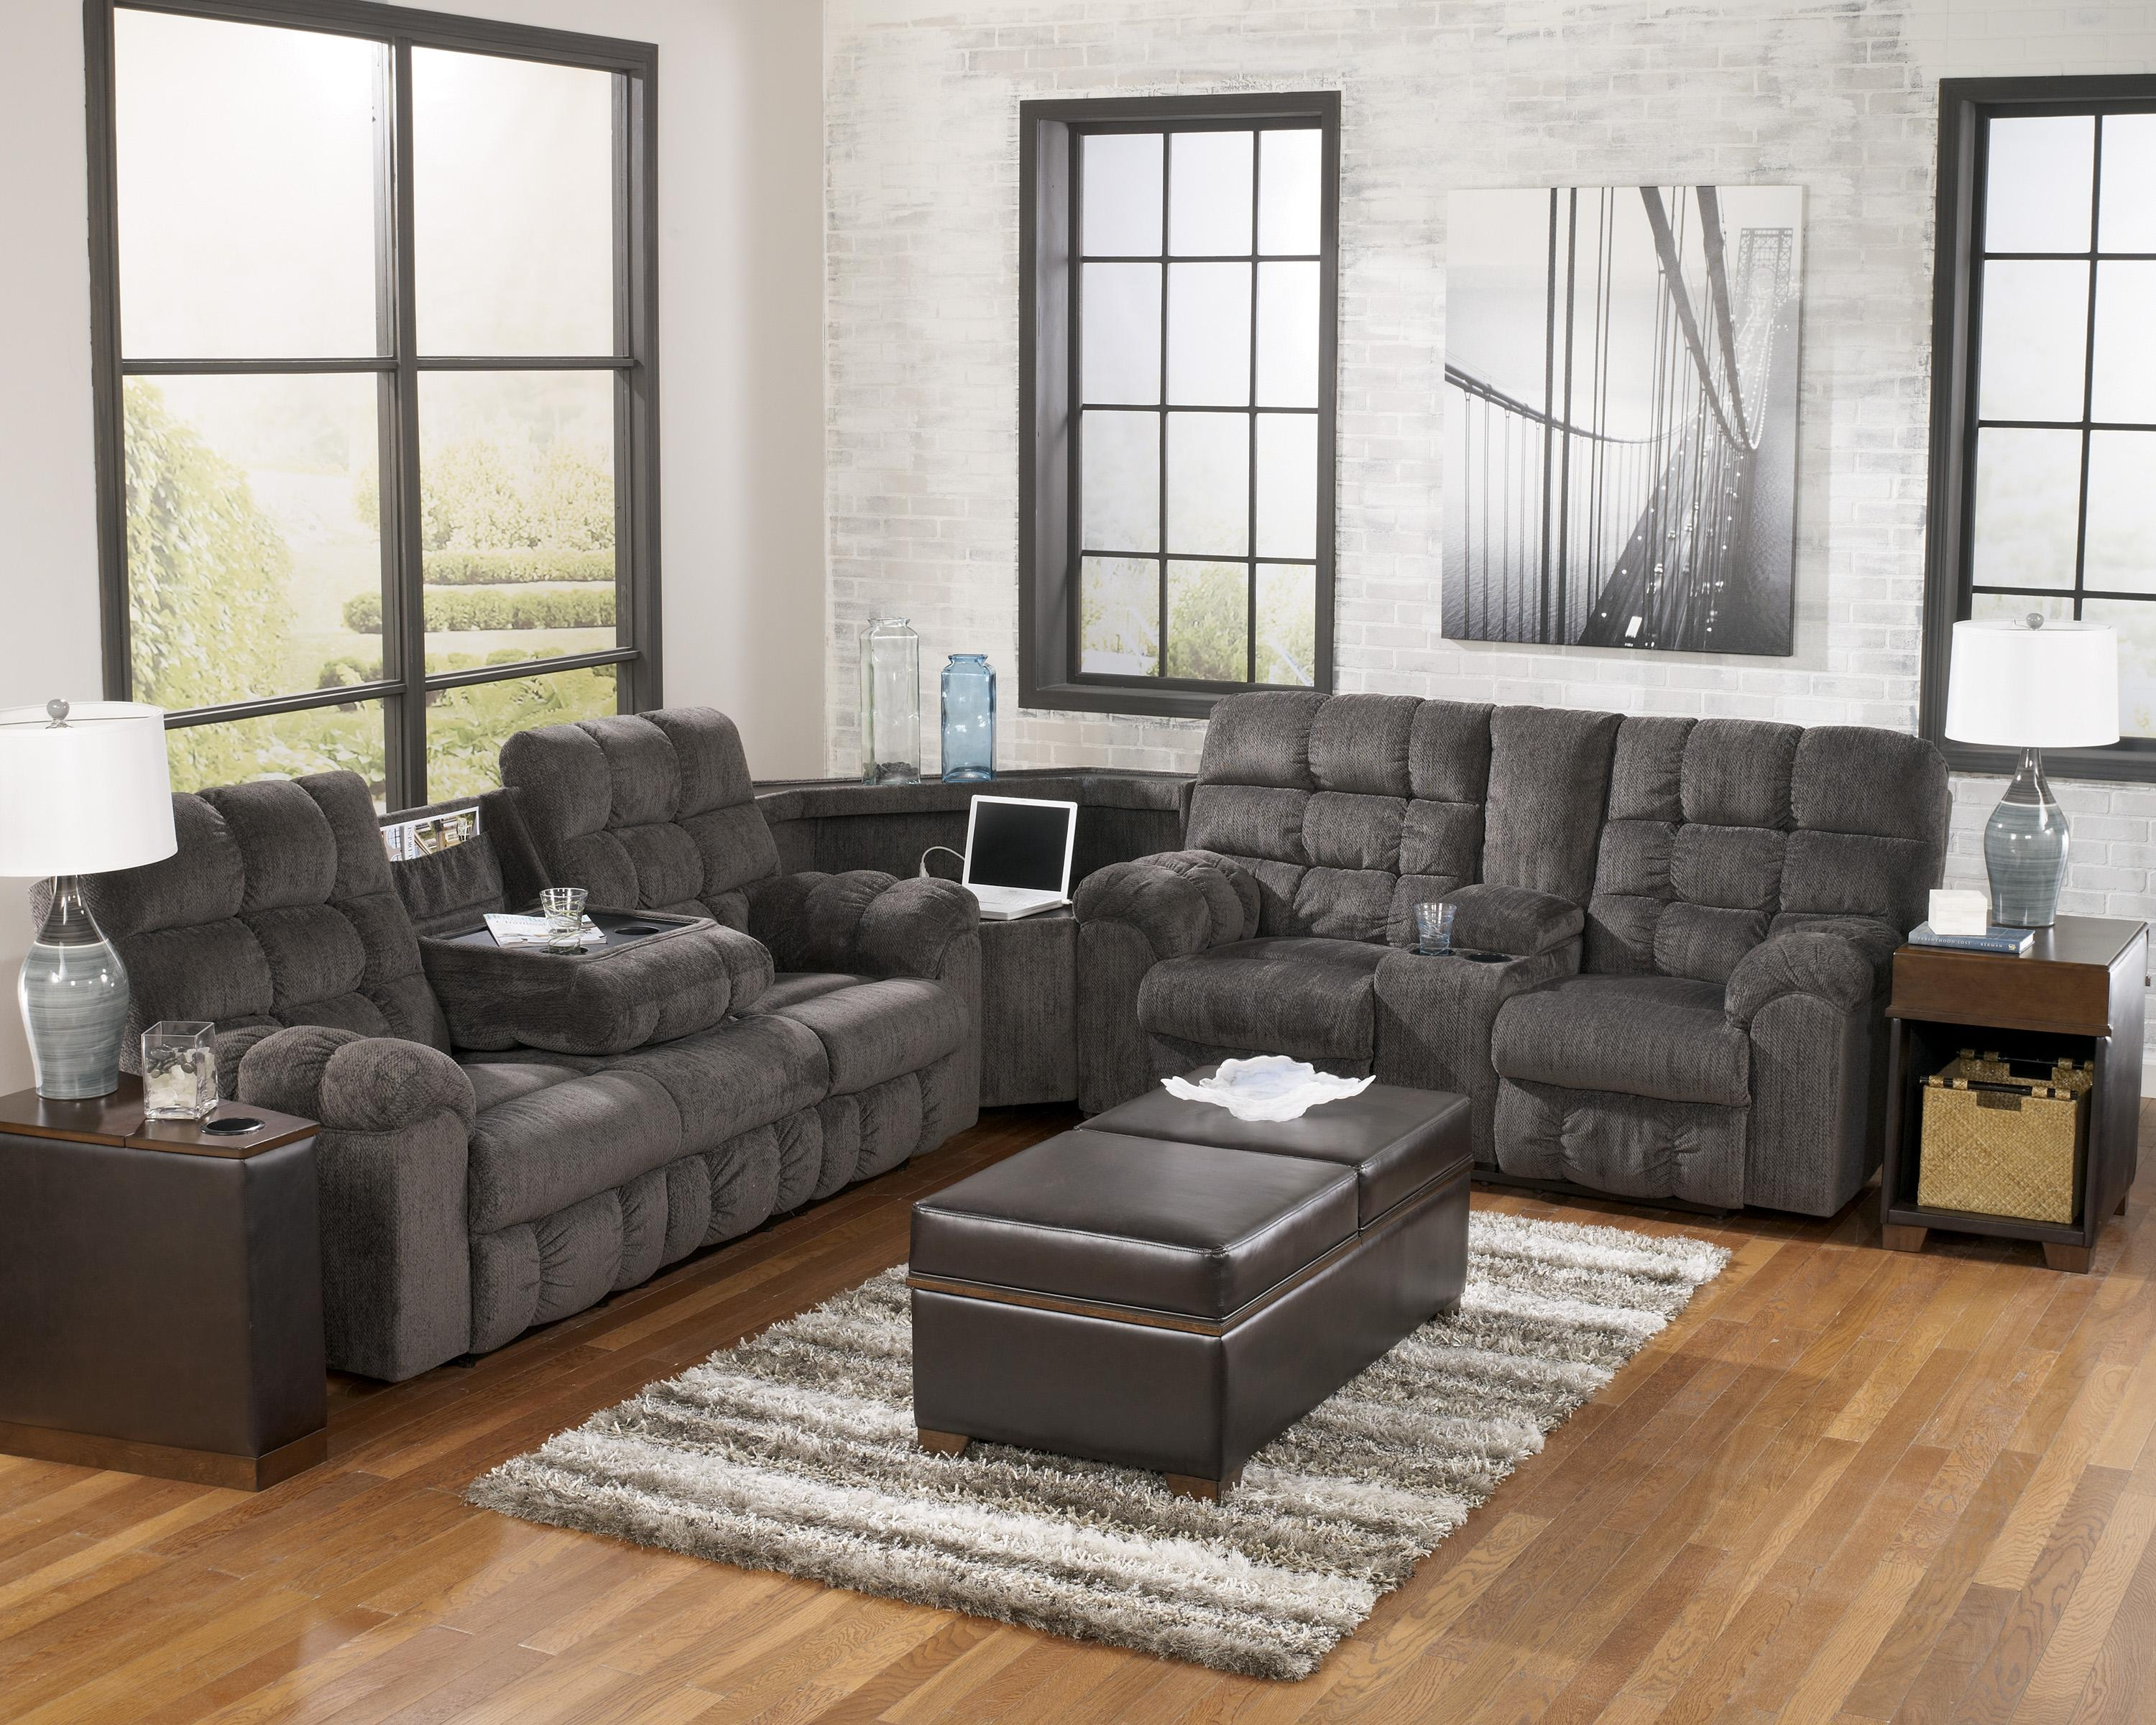 Sofas Center : Ashley Furniture Sectionals Sectional Couch Gray For Ashley Furniture Brown Corduroy Sectional Sofas (View 3 of 20)